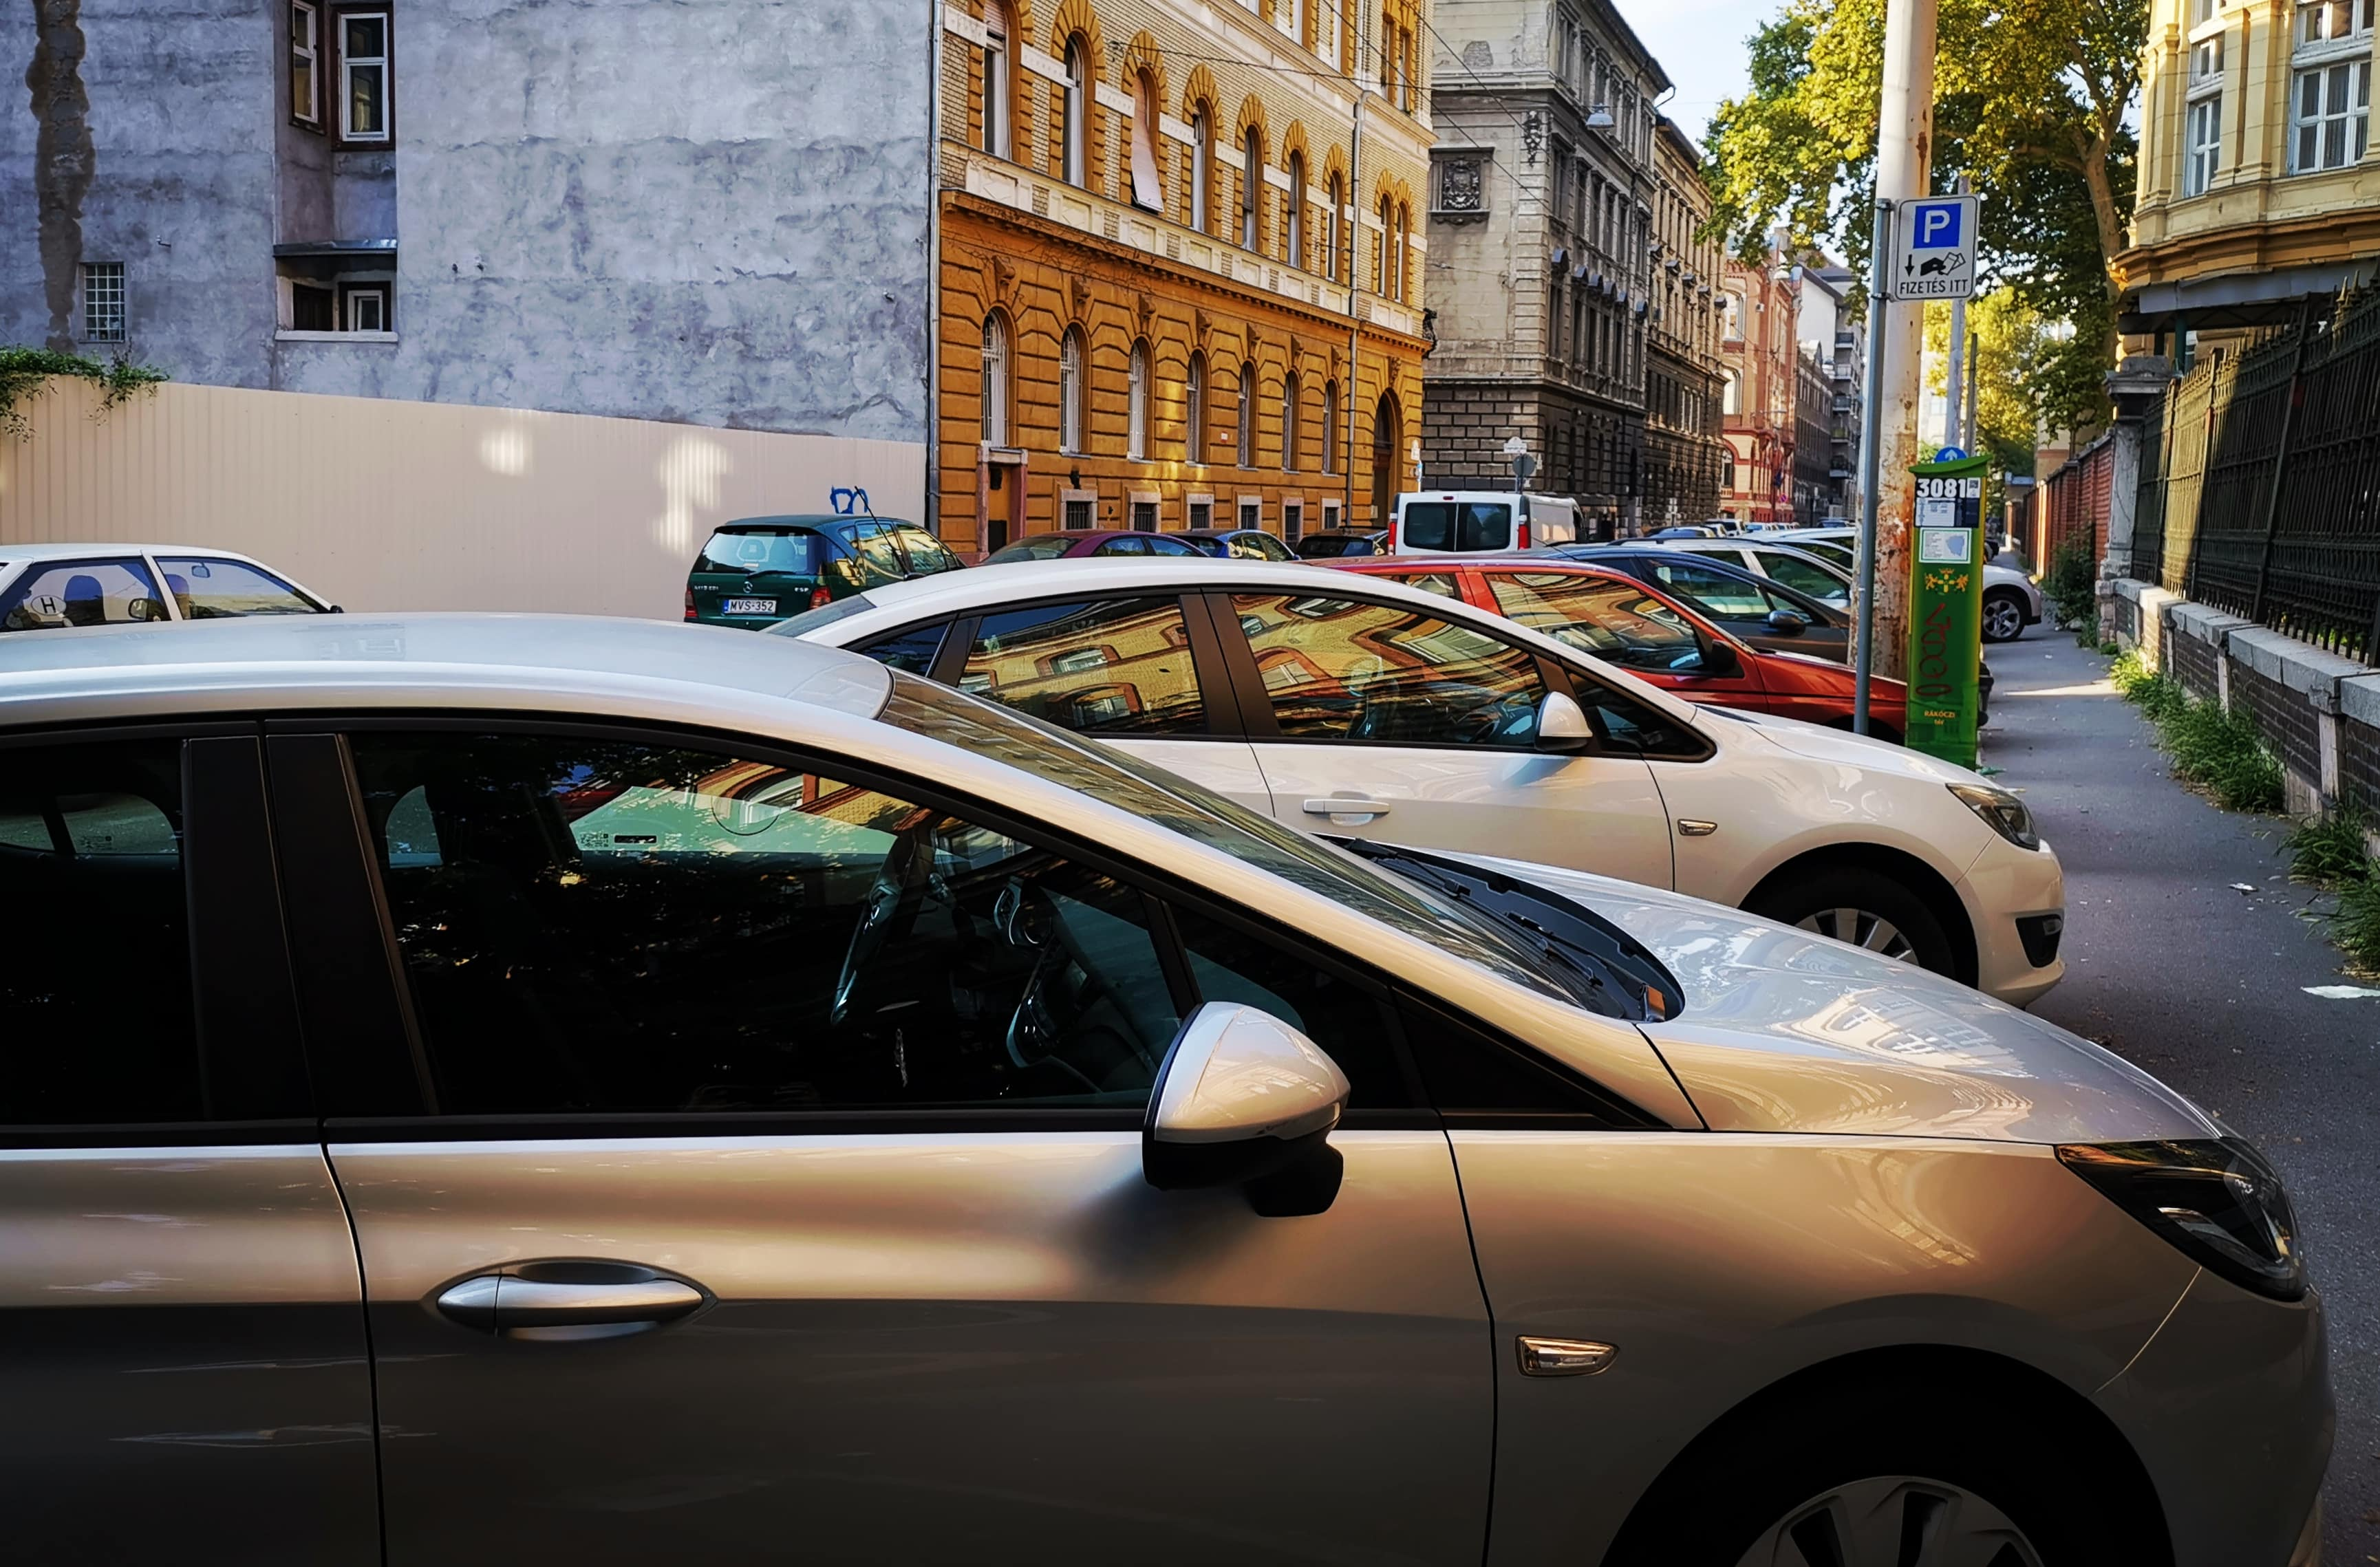 Parking system to be changed in Budapest?